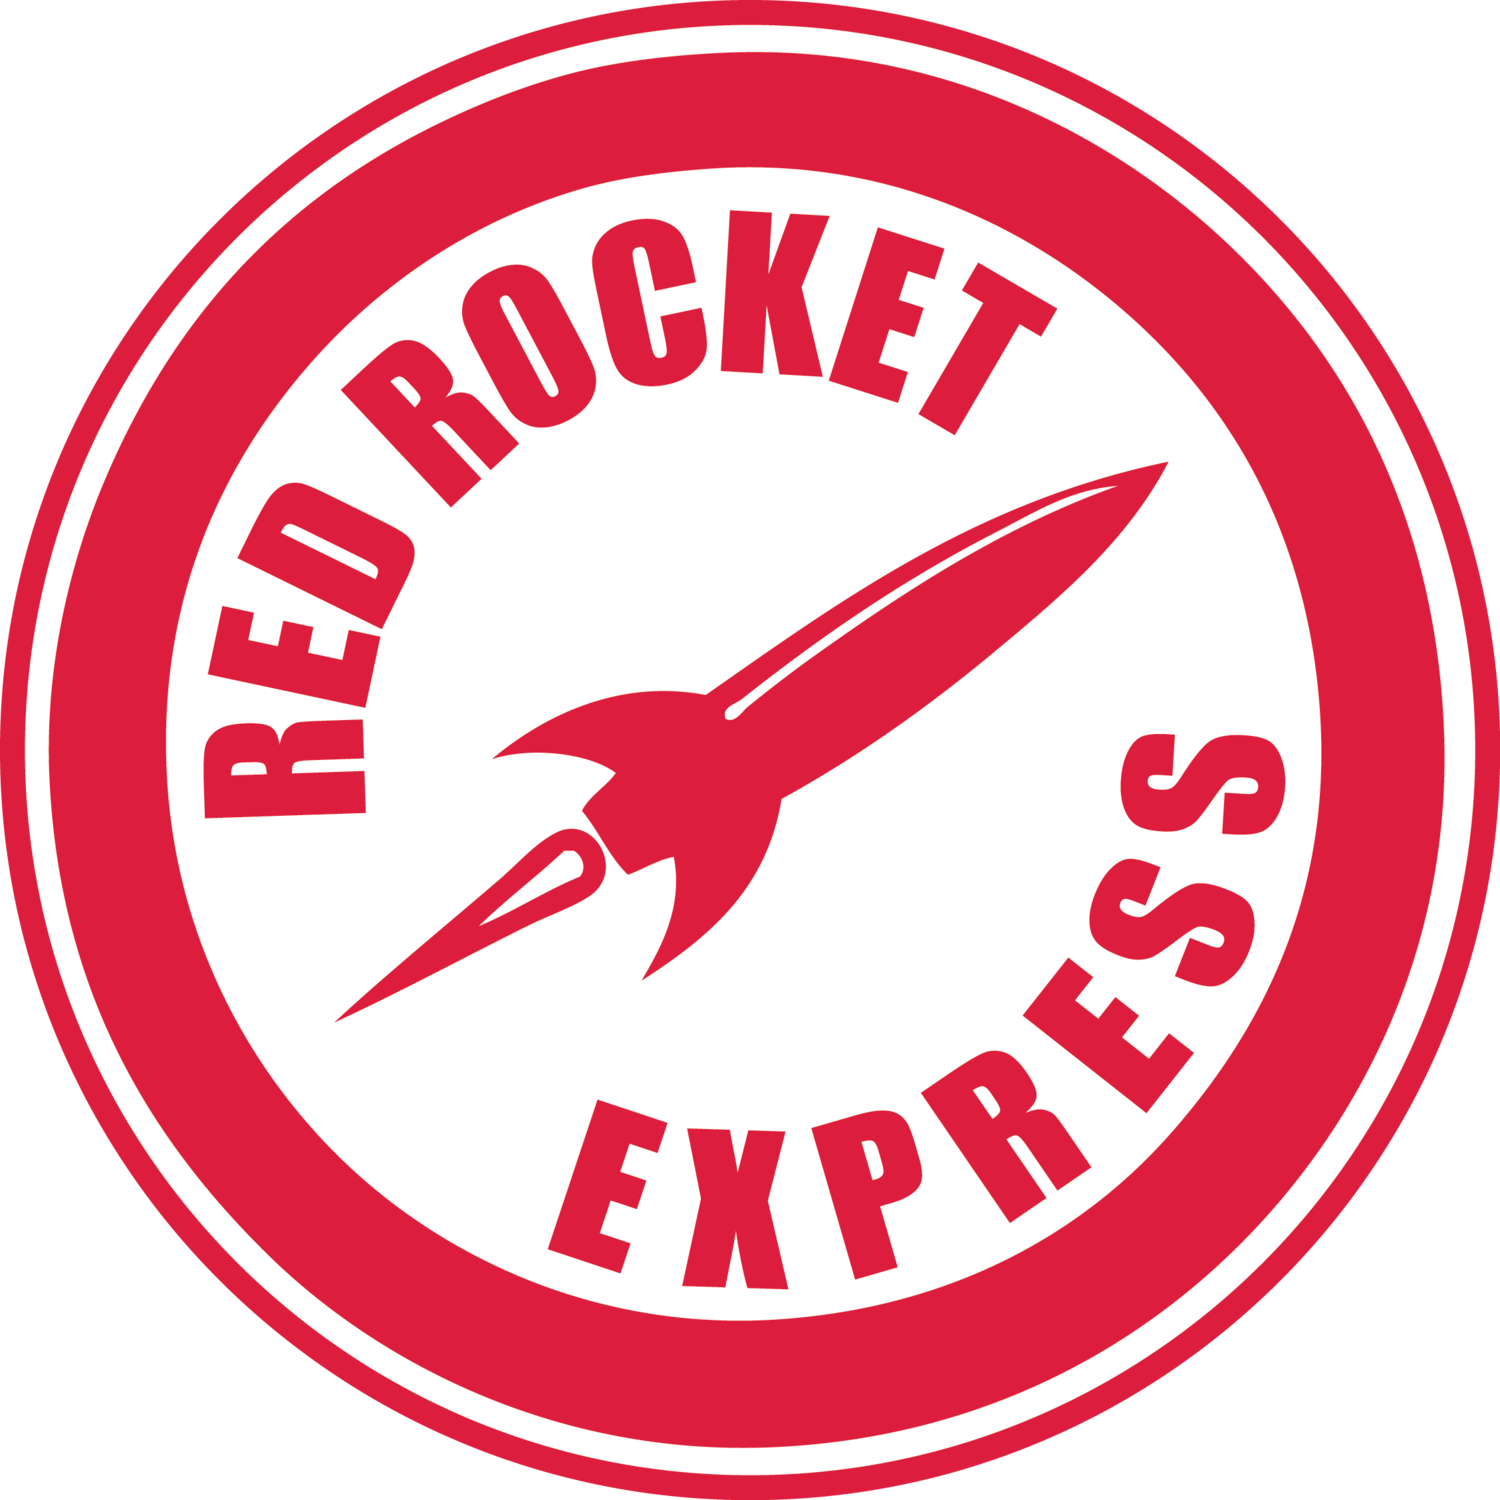 Red Rocket Express Car Wash